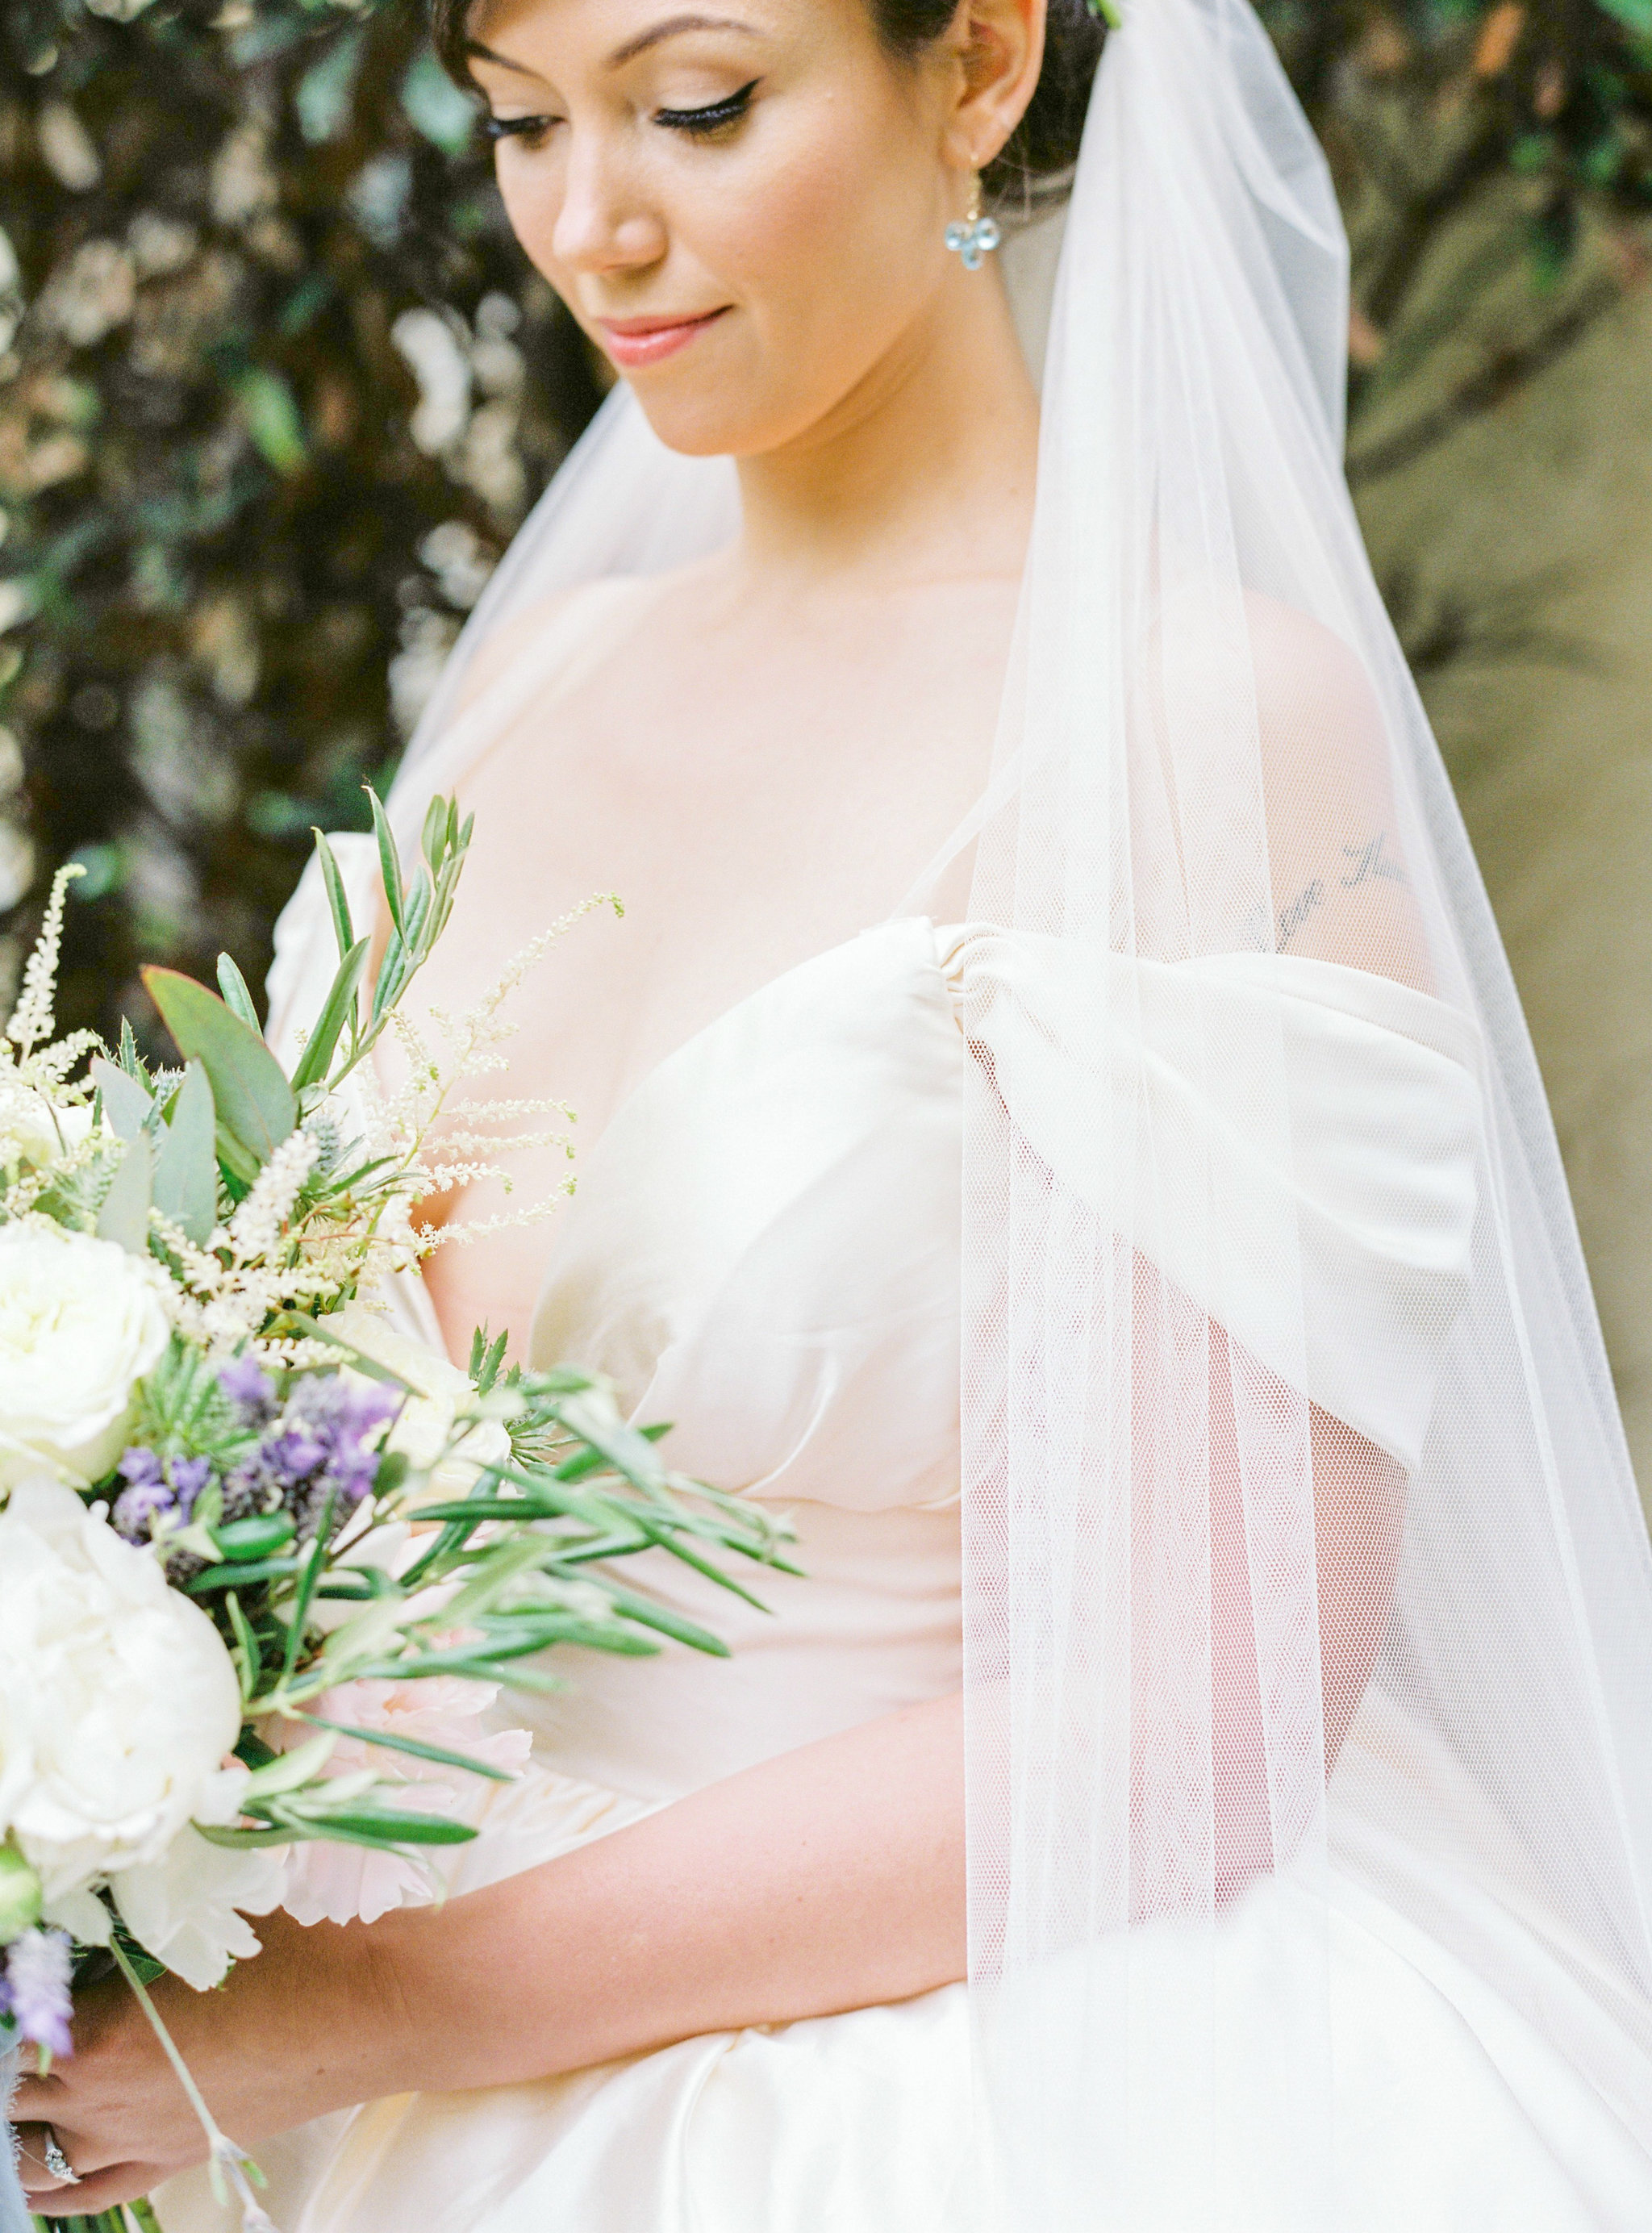 Christina&Andrew_FILM-105.jpg